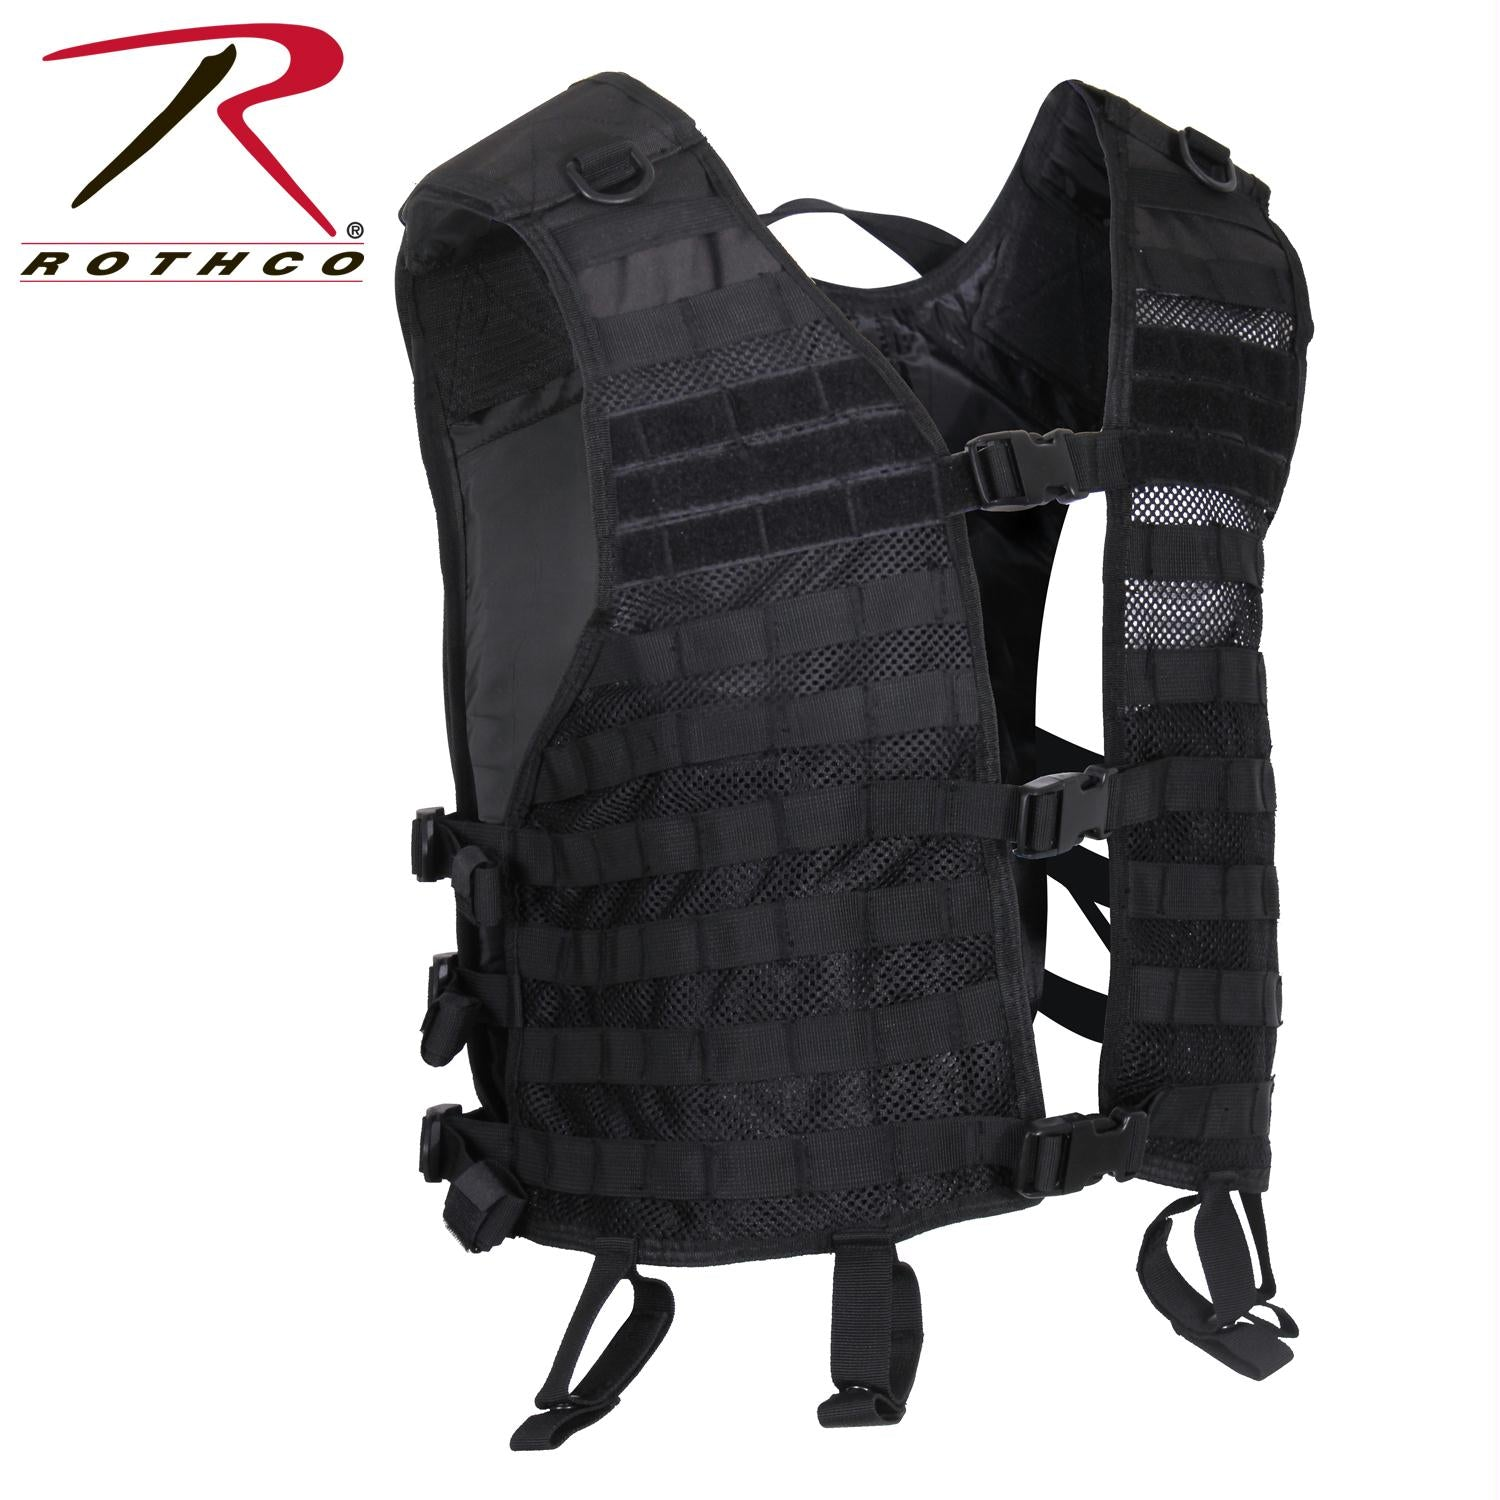 Rothco Lightweight MOLLE Utility Vest - Black